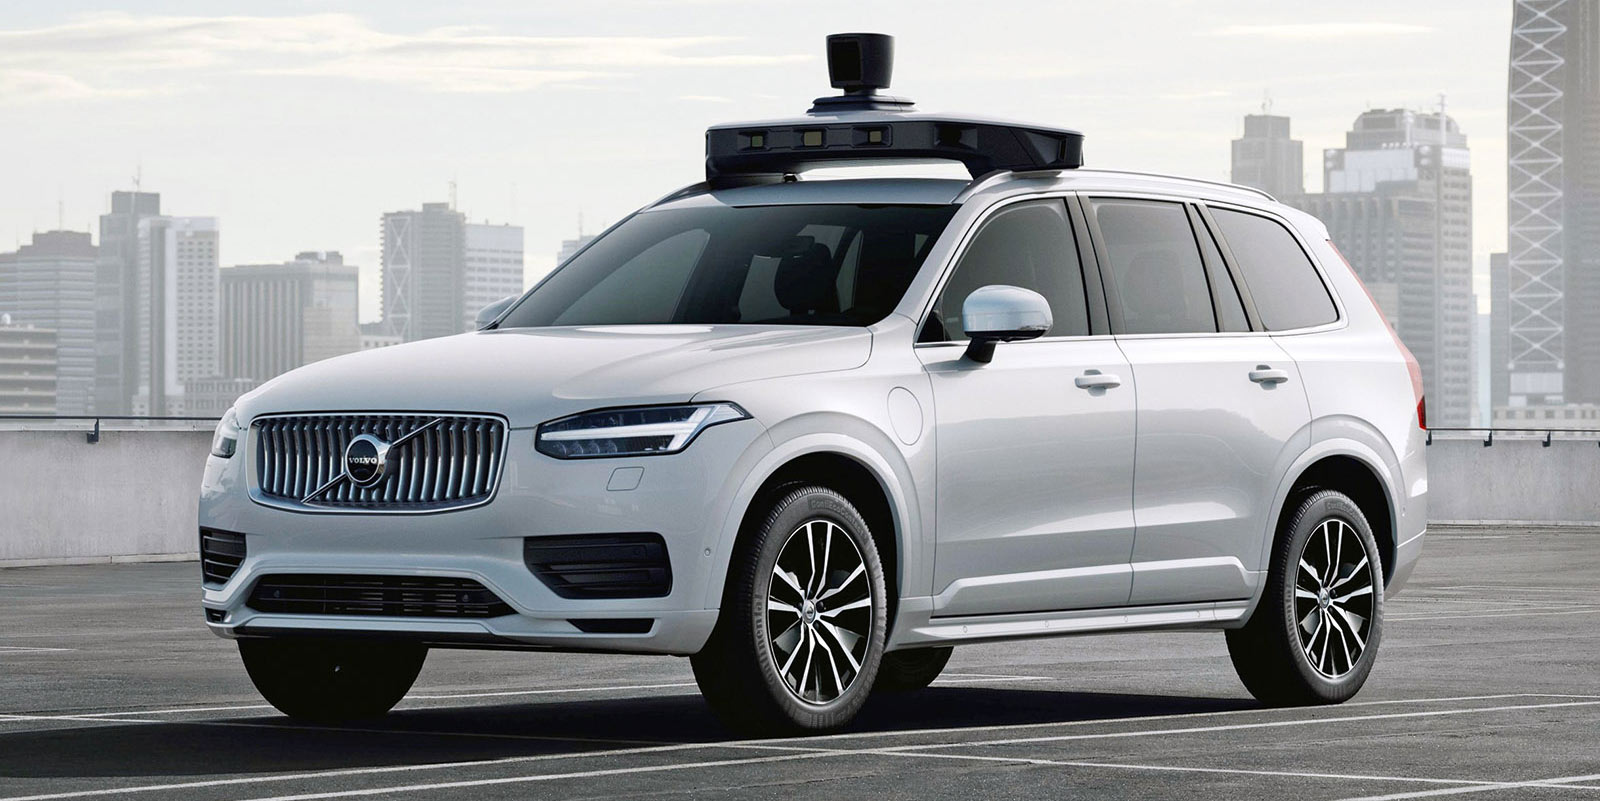 Volvo currently supplies vehicles for Uber's self-driving program